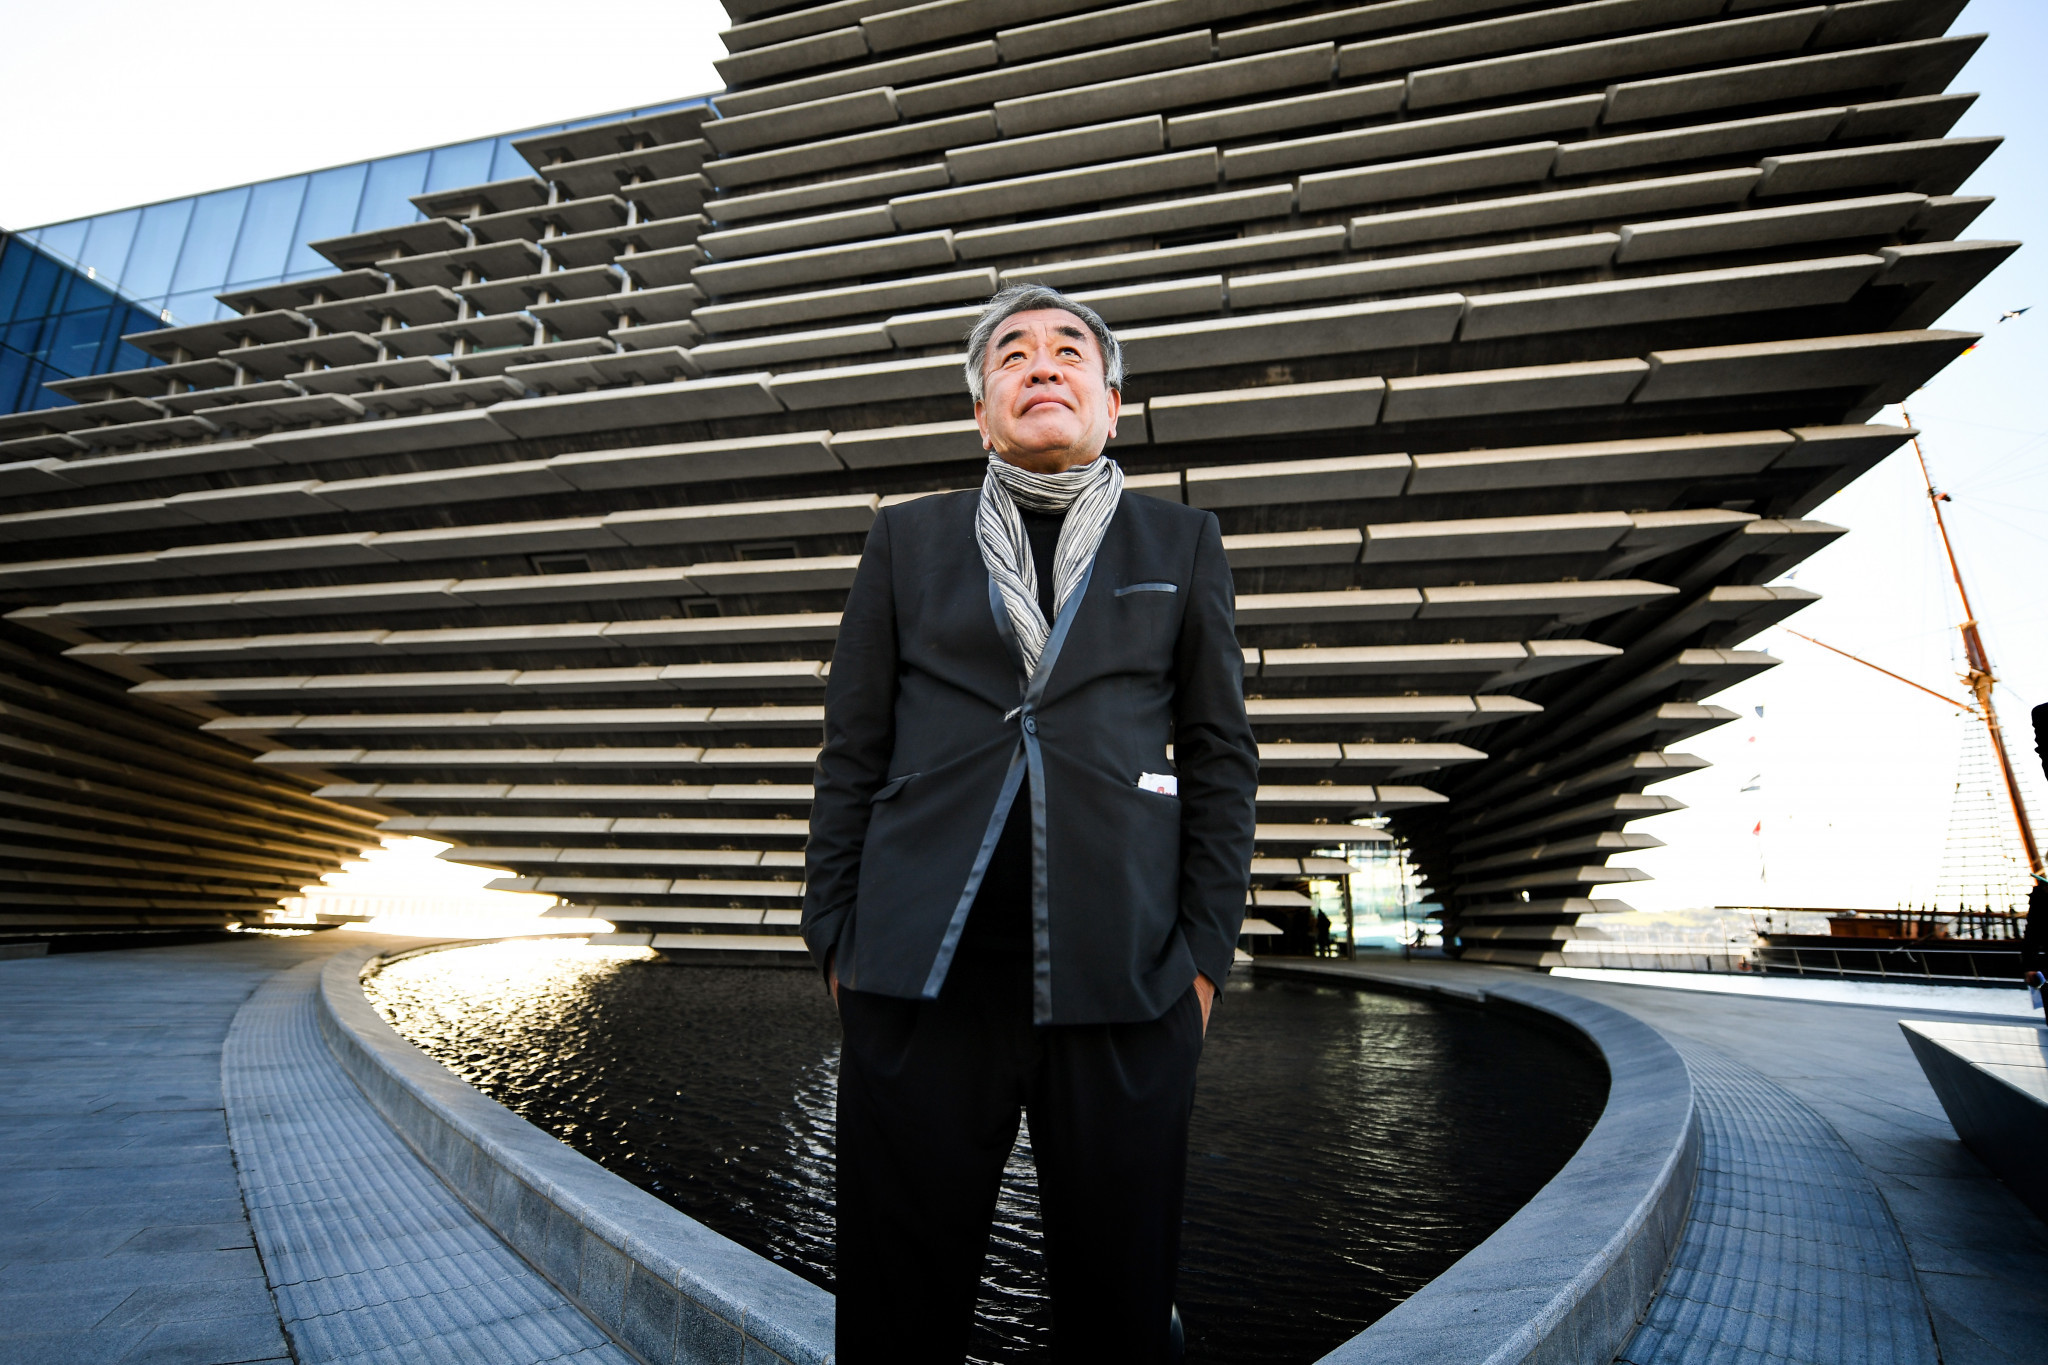 Architect Kengo Kuma at the V&A Dundee ©Getty Images